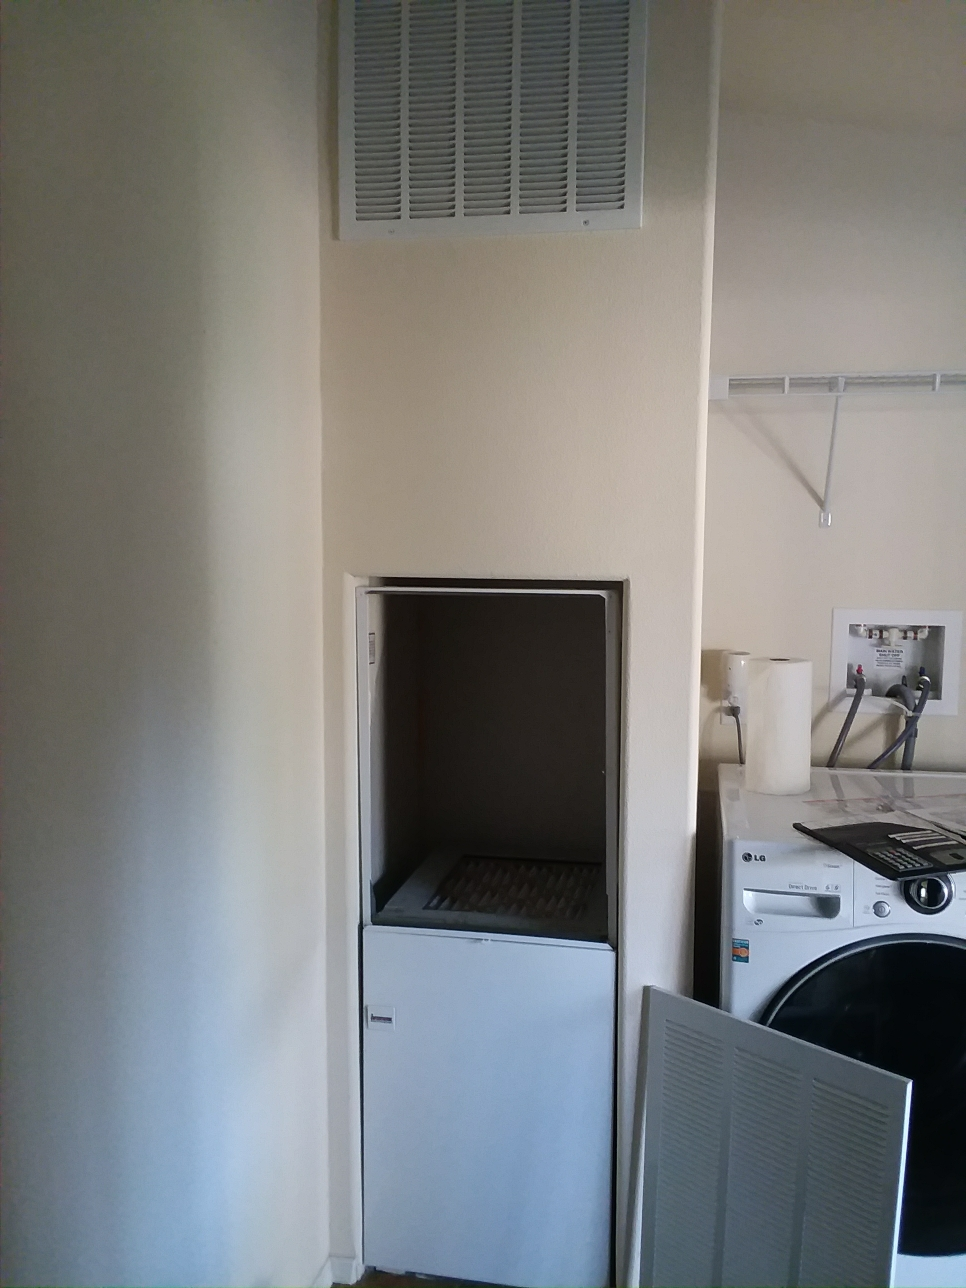 Everett, WA - Estimate on a heat pump add on to an electric furnace in a mobile home